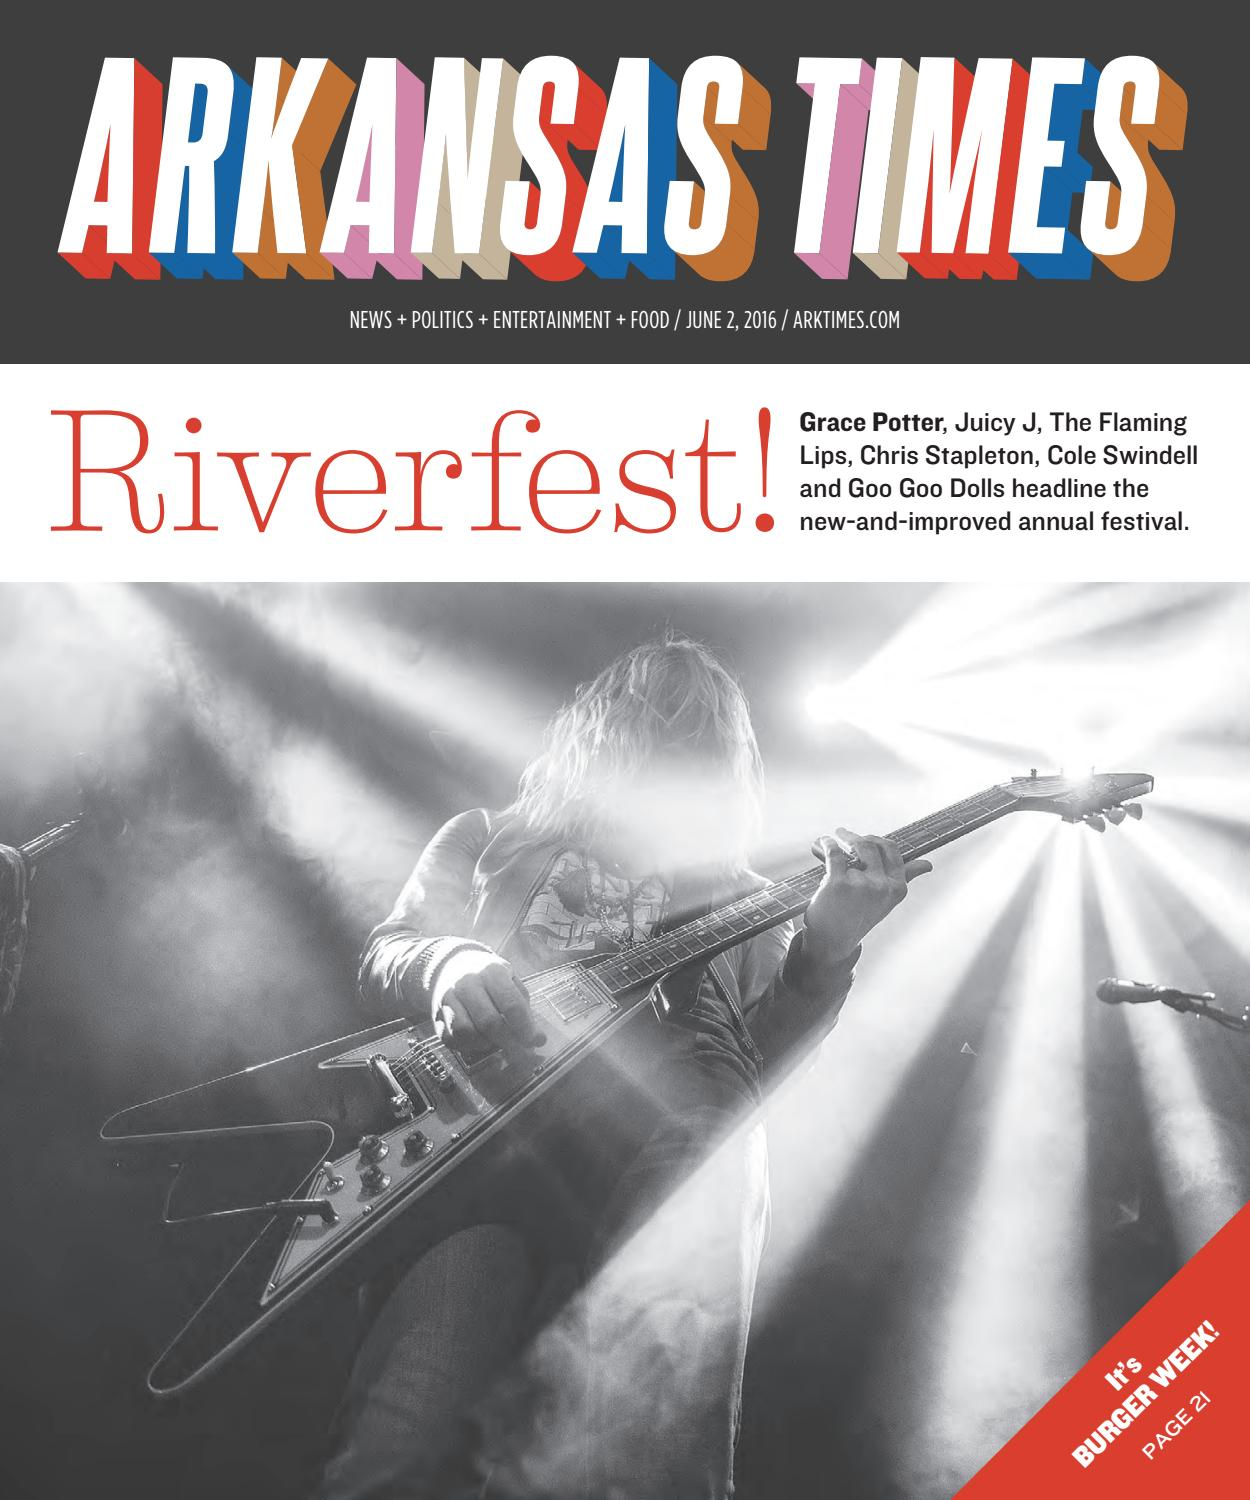 Arkansas Times - June 2 2016 by Arkansas Times - issuu